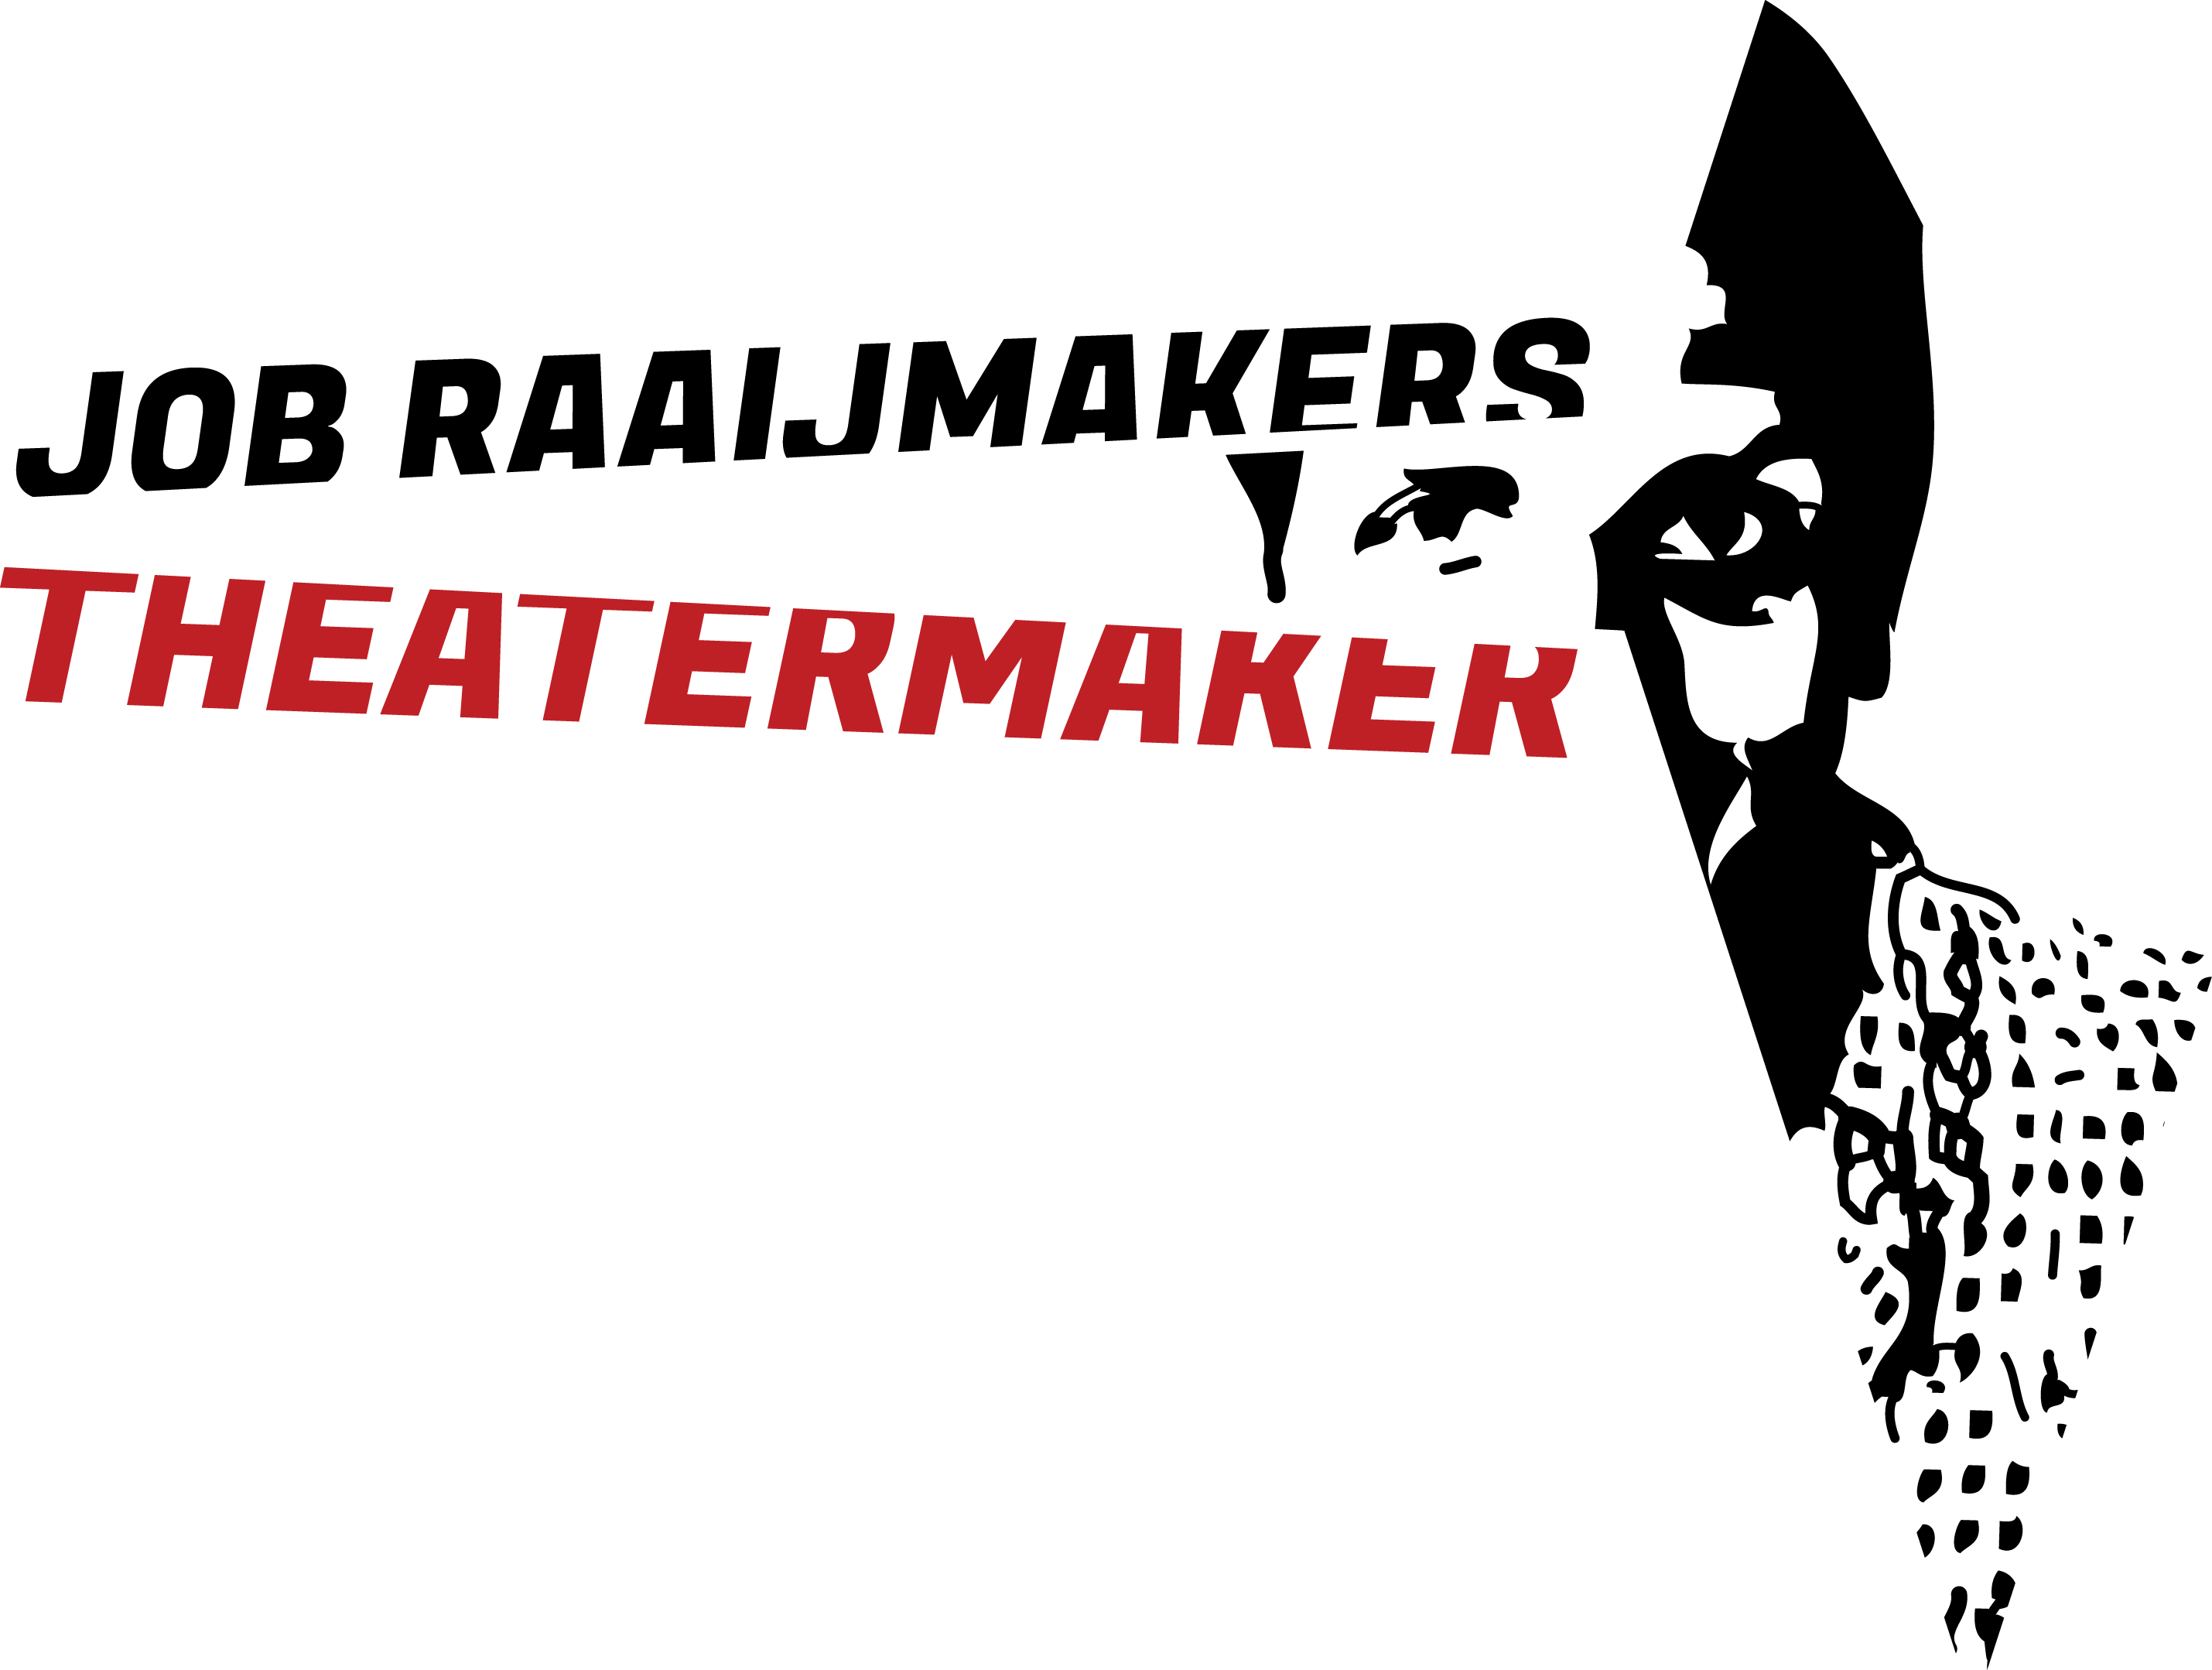 Job Raaijmakers